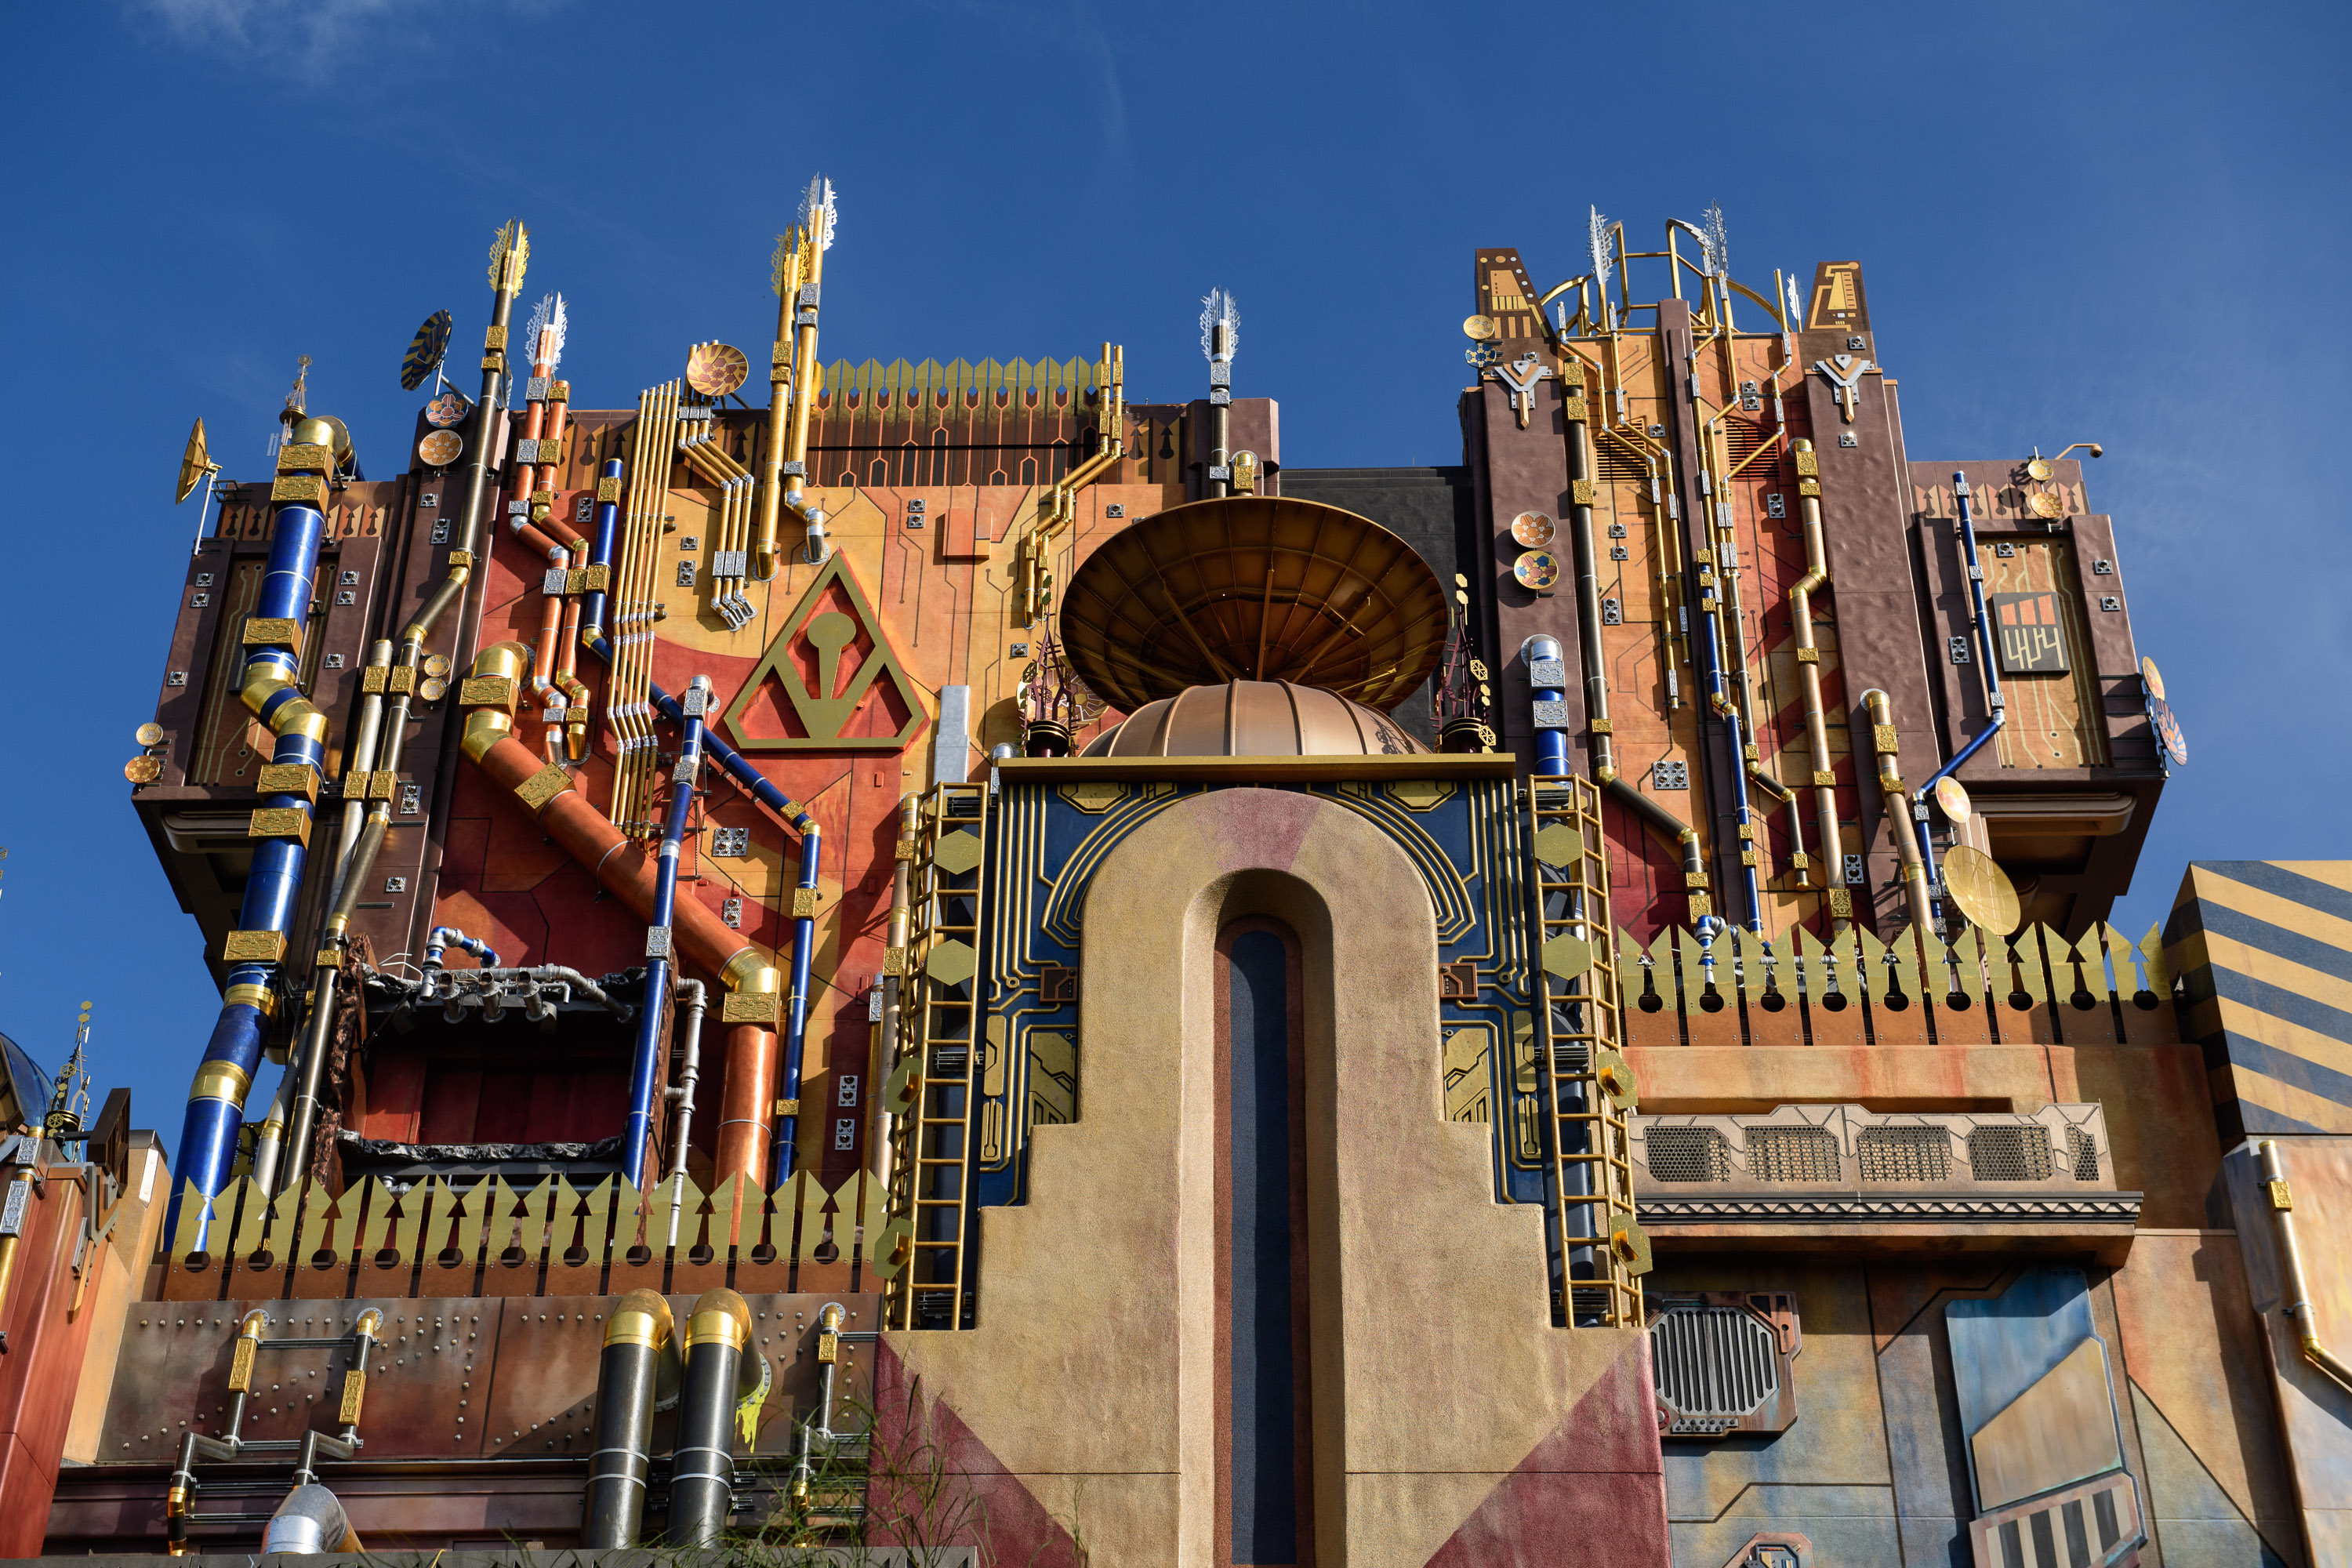 California Adventure Park Guardians of the Galaxy Ride